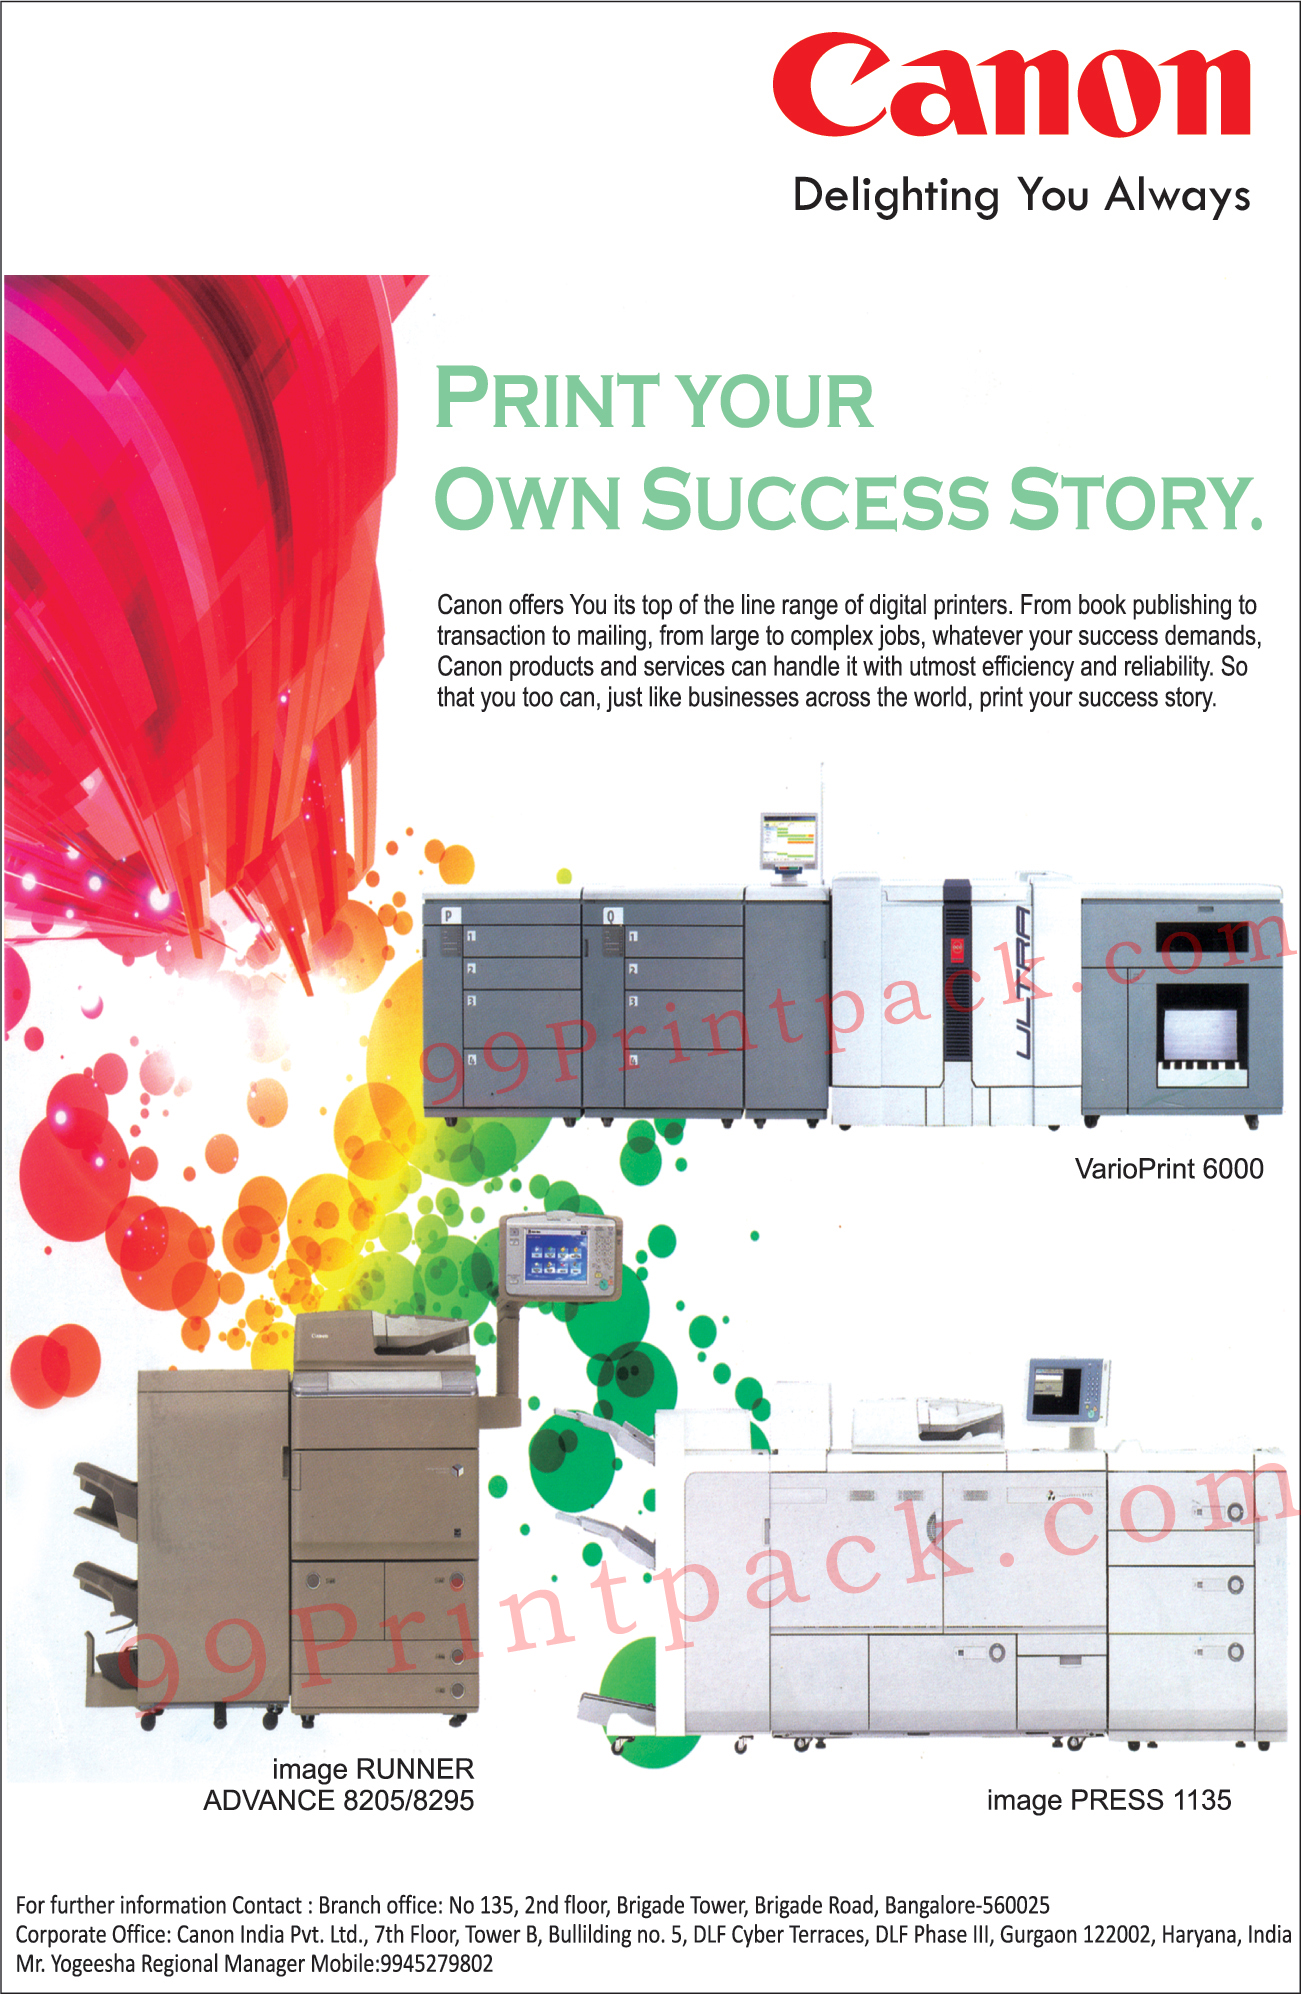 Image Runner, Vario Print, Image Press, Digital Printer, Printer, Scanner, Fax Machines, Projectors